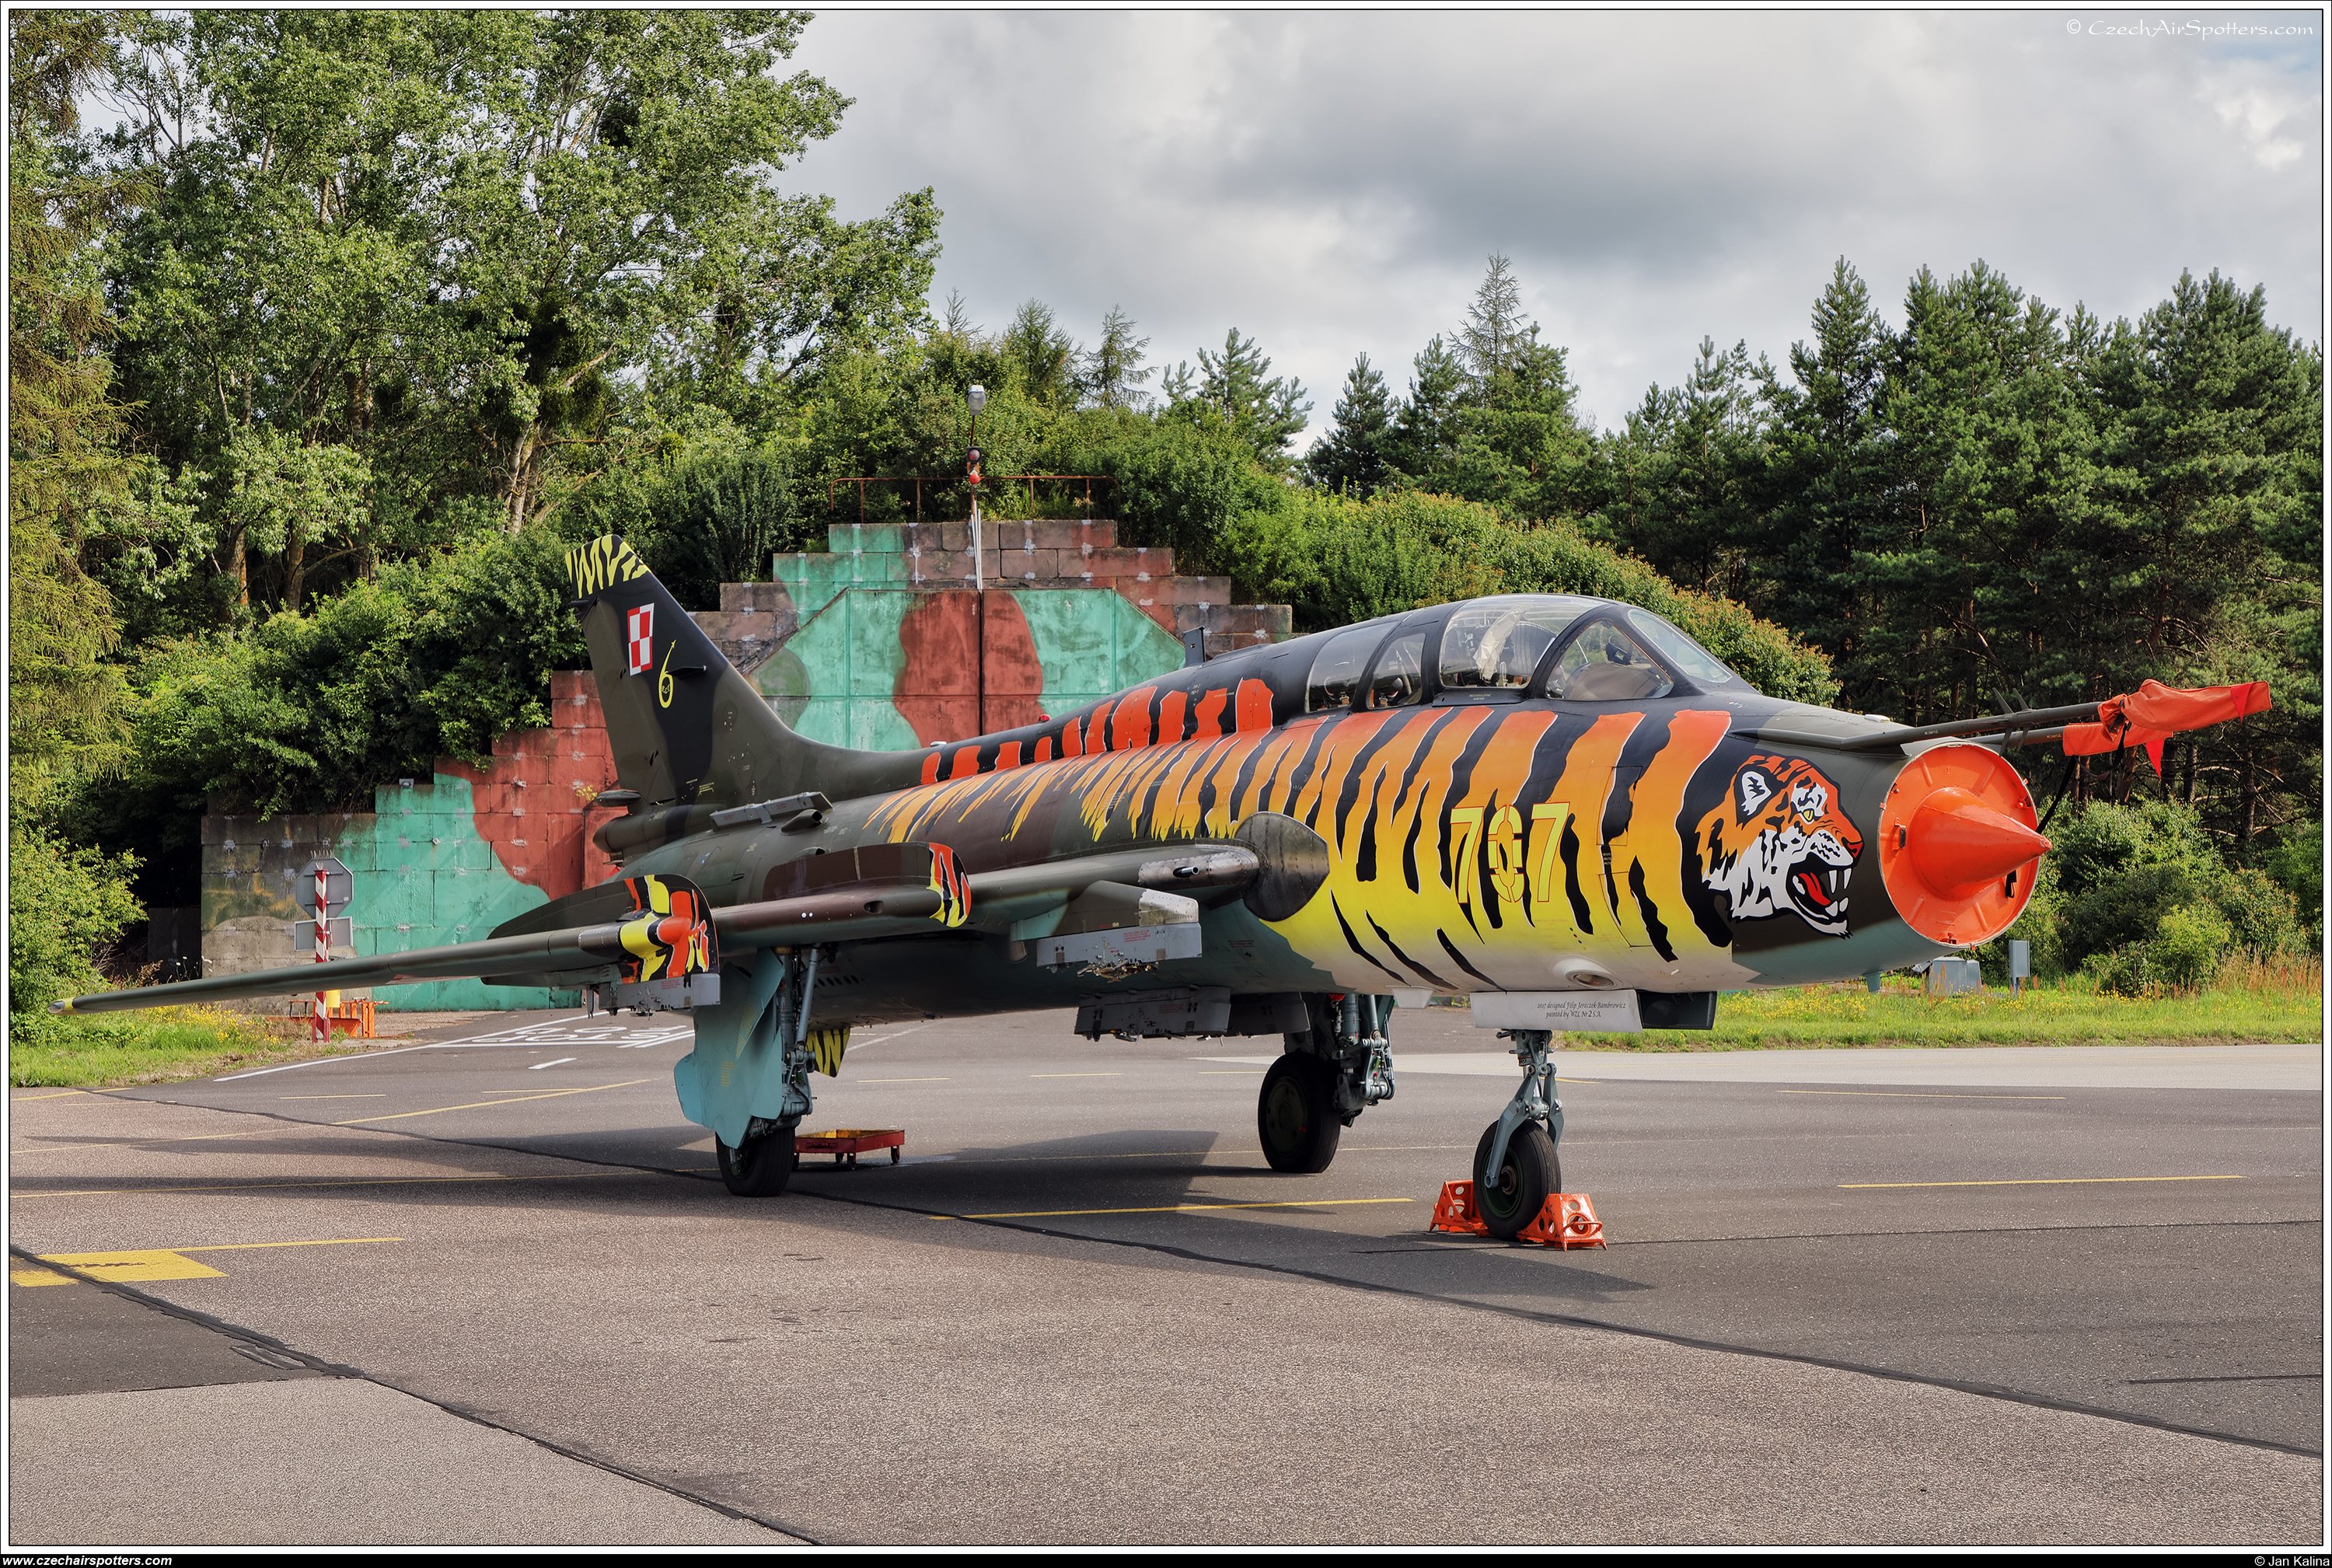 Poland - Air Force – Sukhoi Su-22 UM-3K Fitter G 707